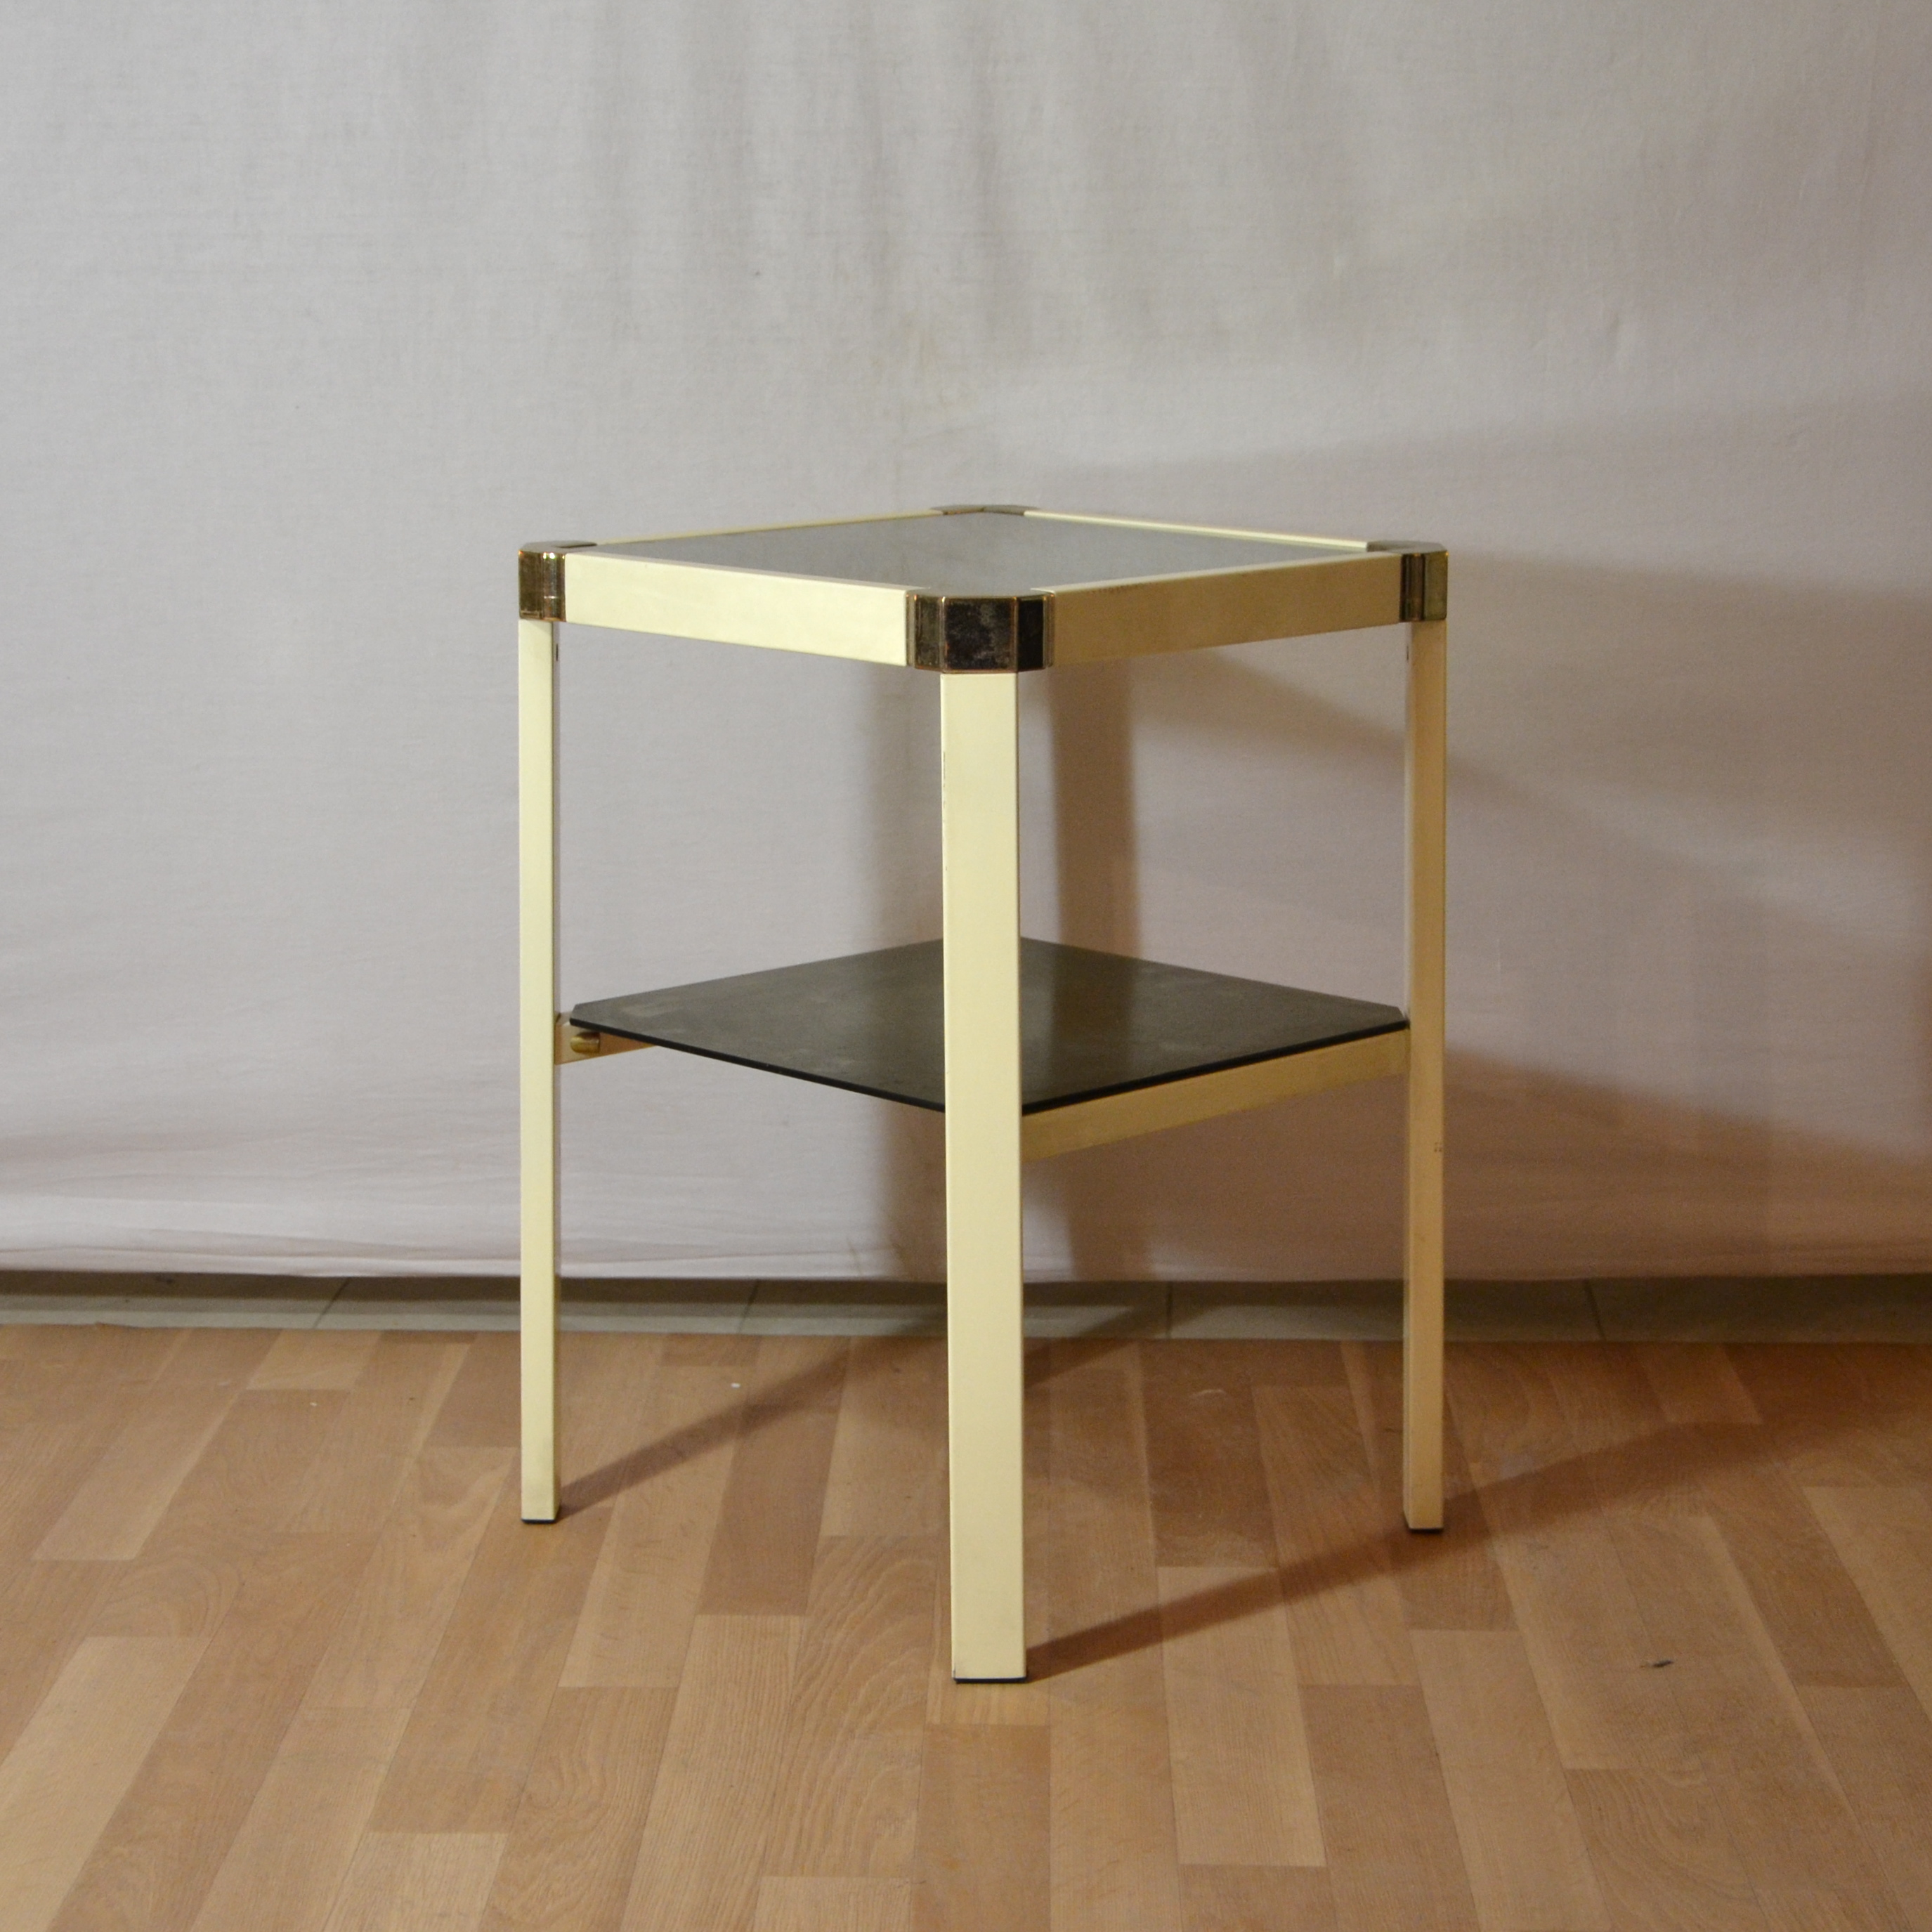 Petites tables d appoint conceptions de maison for Petites tables d appoint